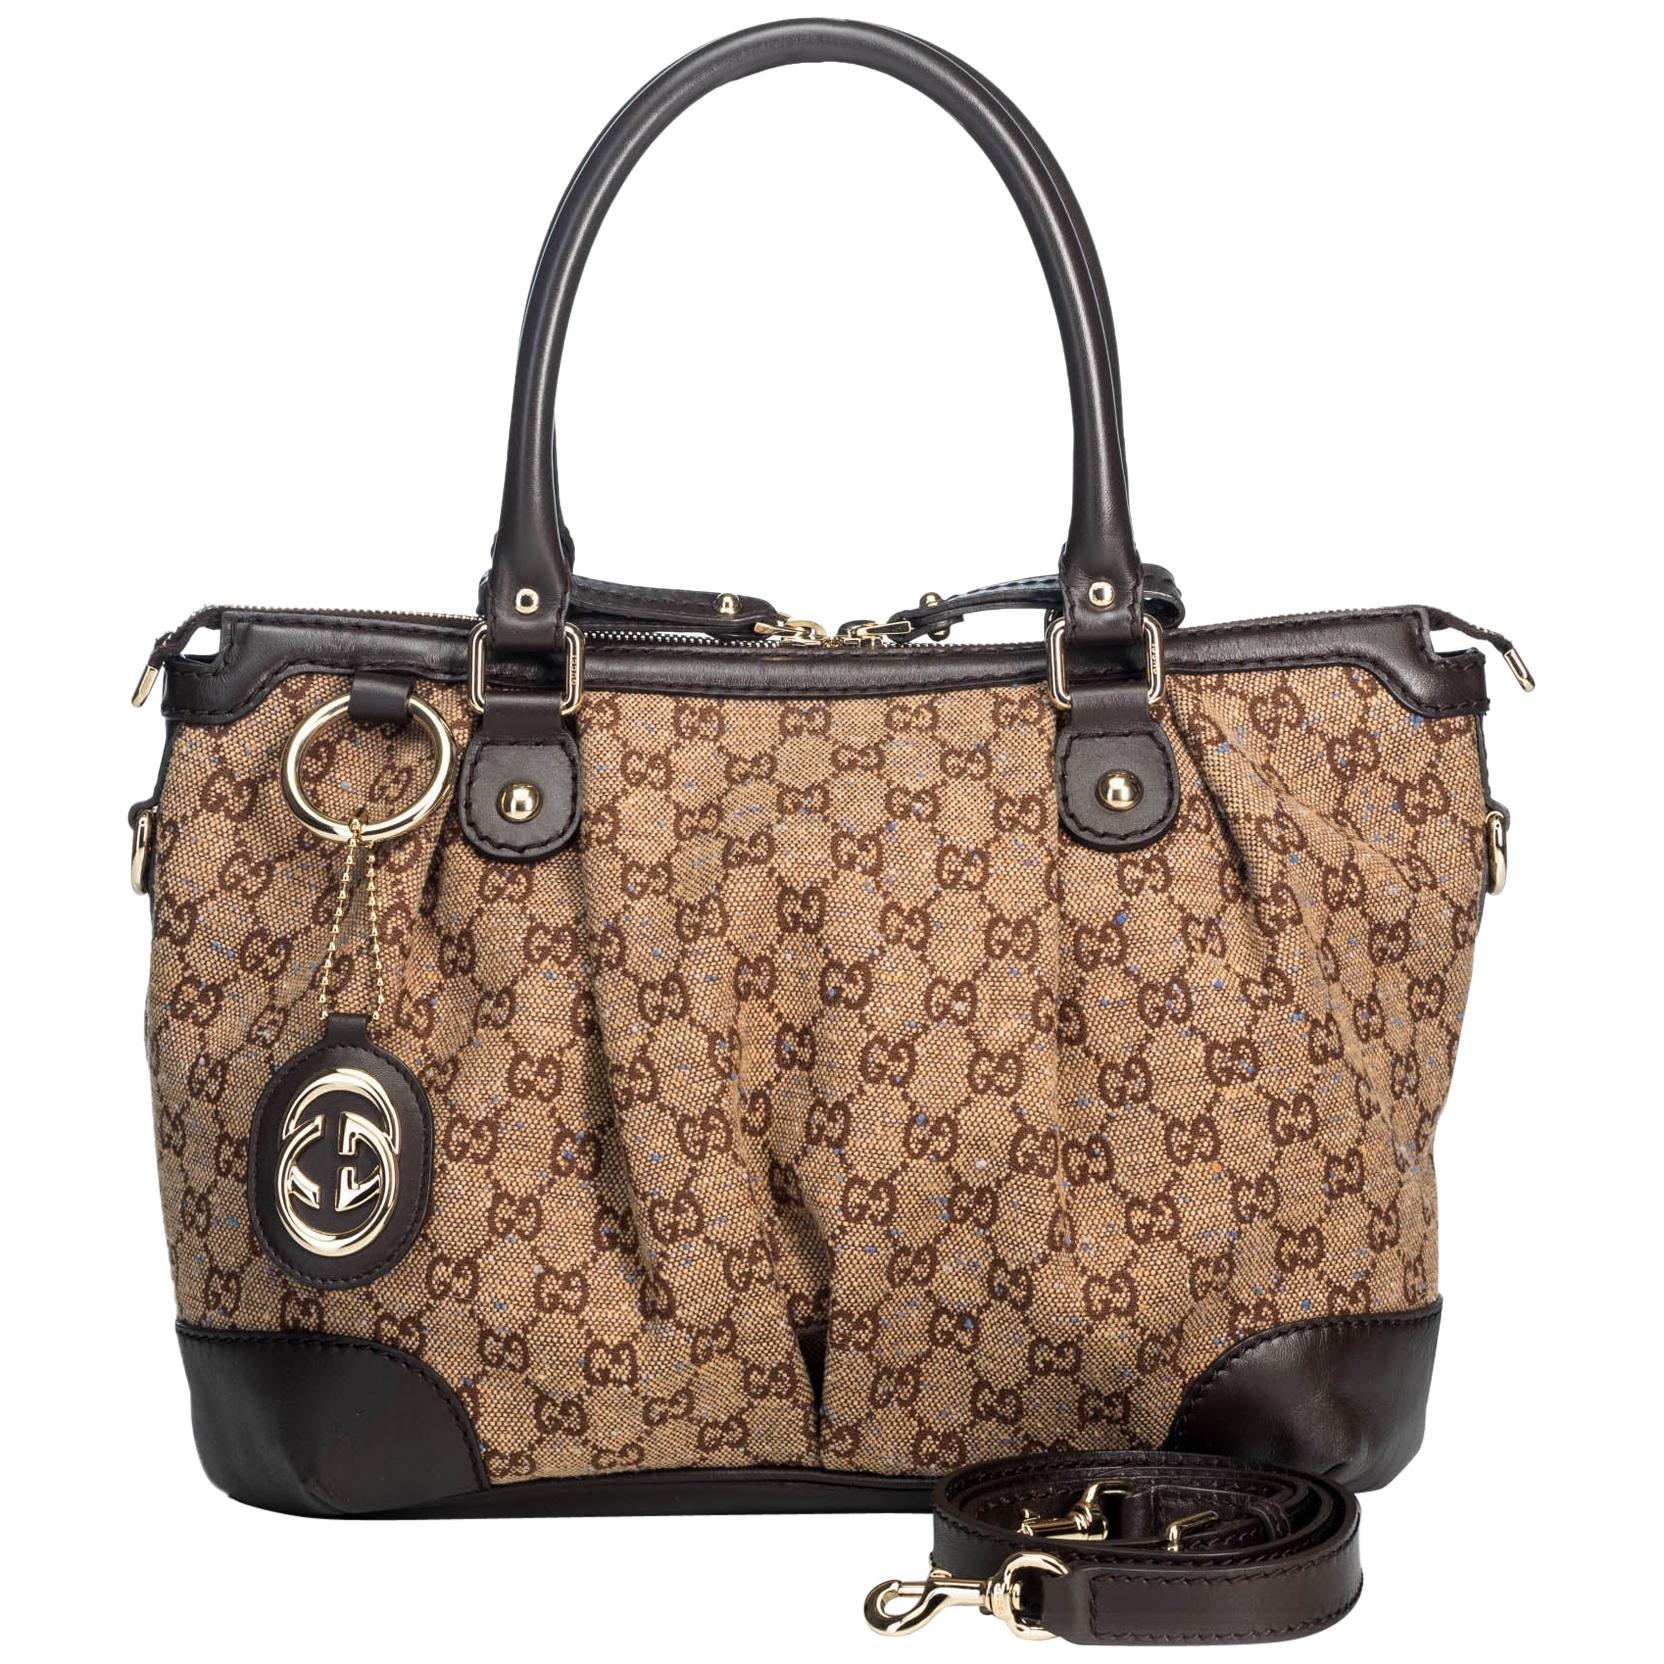 0370ff3be Vintage Gucci Handbags and Purses - 2,339 For Sale at 1stdibs - Page 4